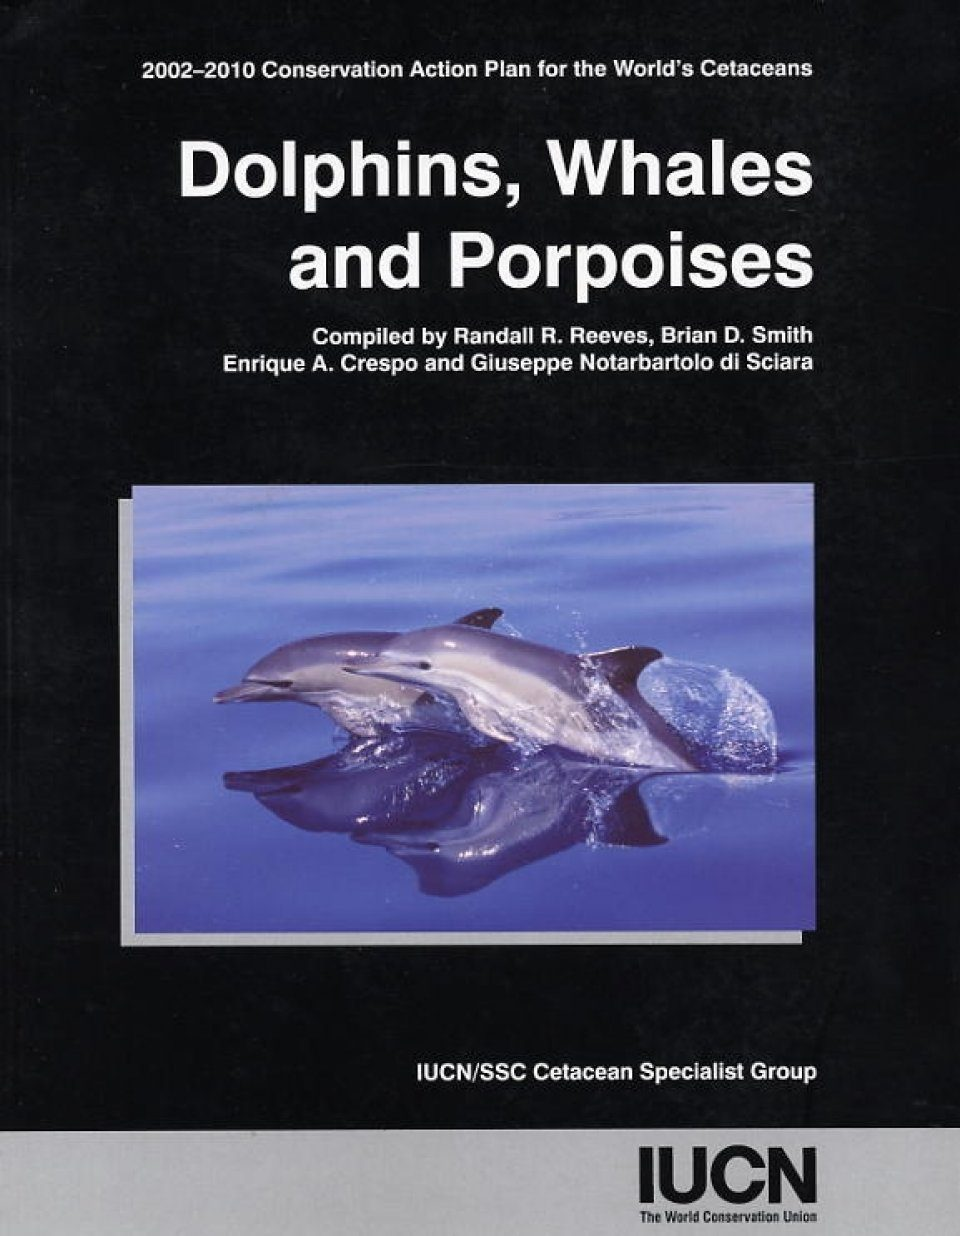 Dolphins, Whales and Porpoises